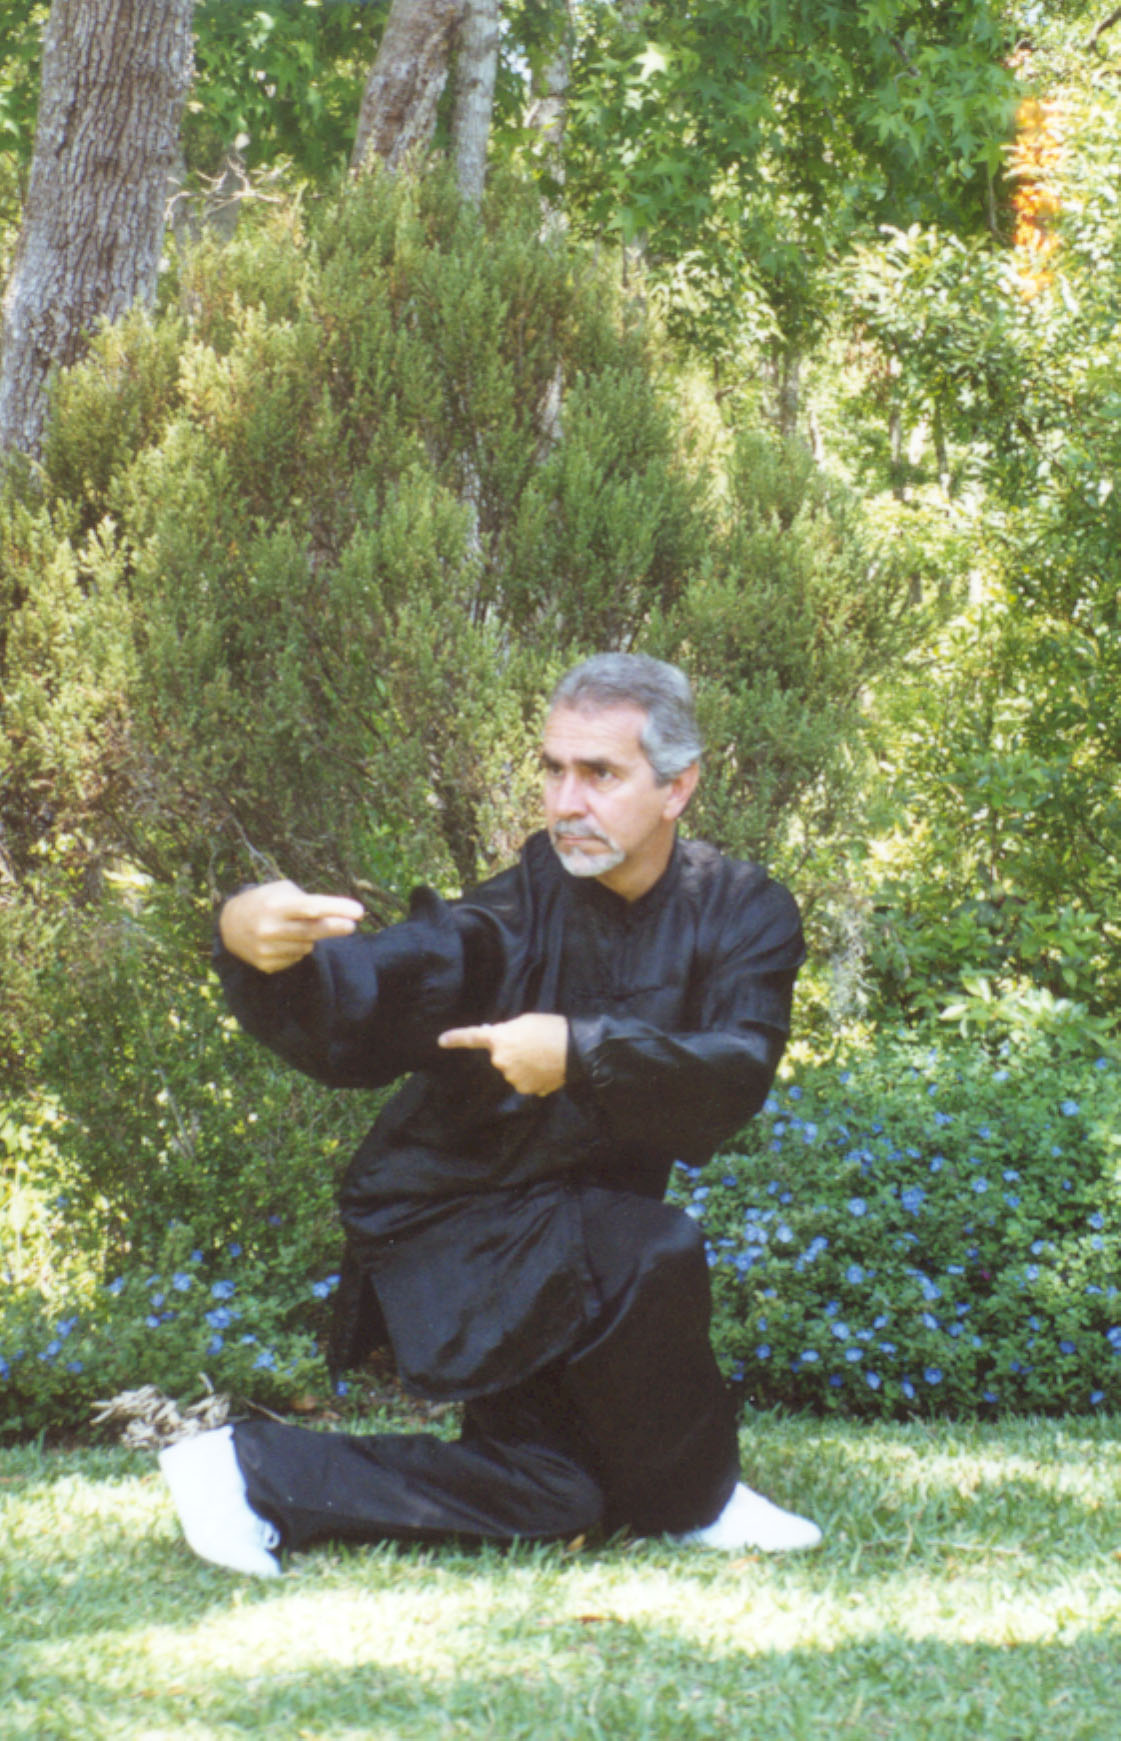 Sifu Paolillo in Praying Mantis posture, late 90s